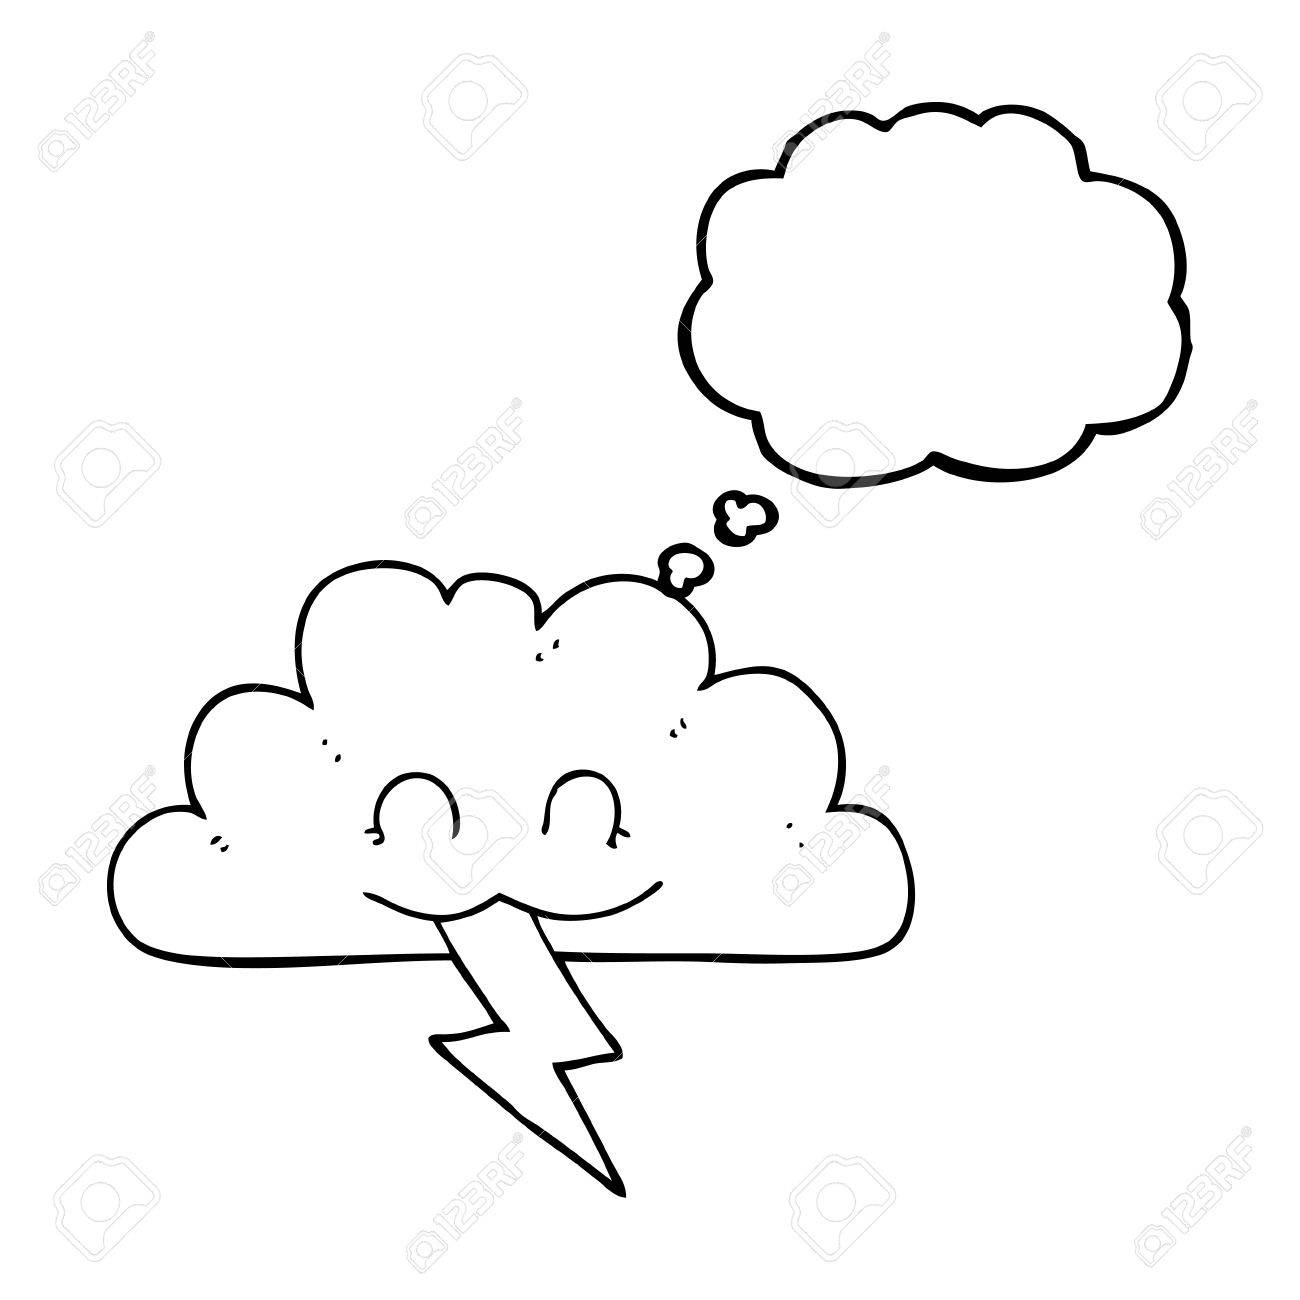 1300x1300 Freehand Drawn Thought Bubble Cartoon Storm Cloud Royalty Free